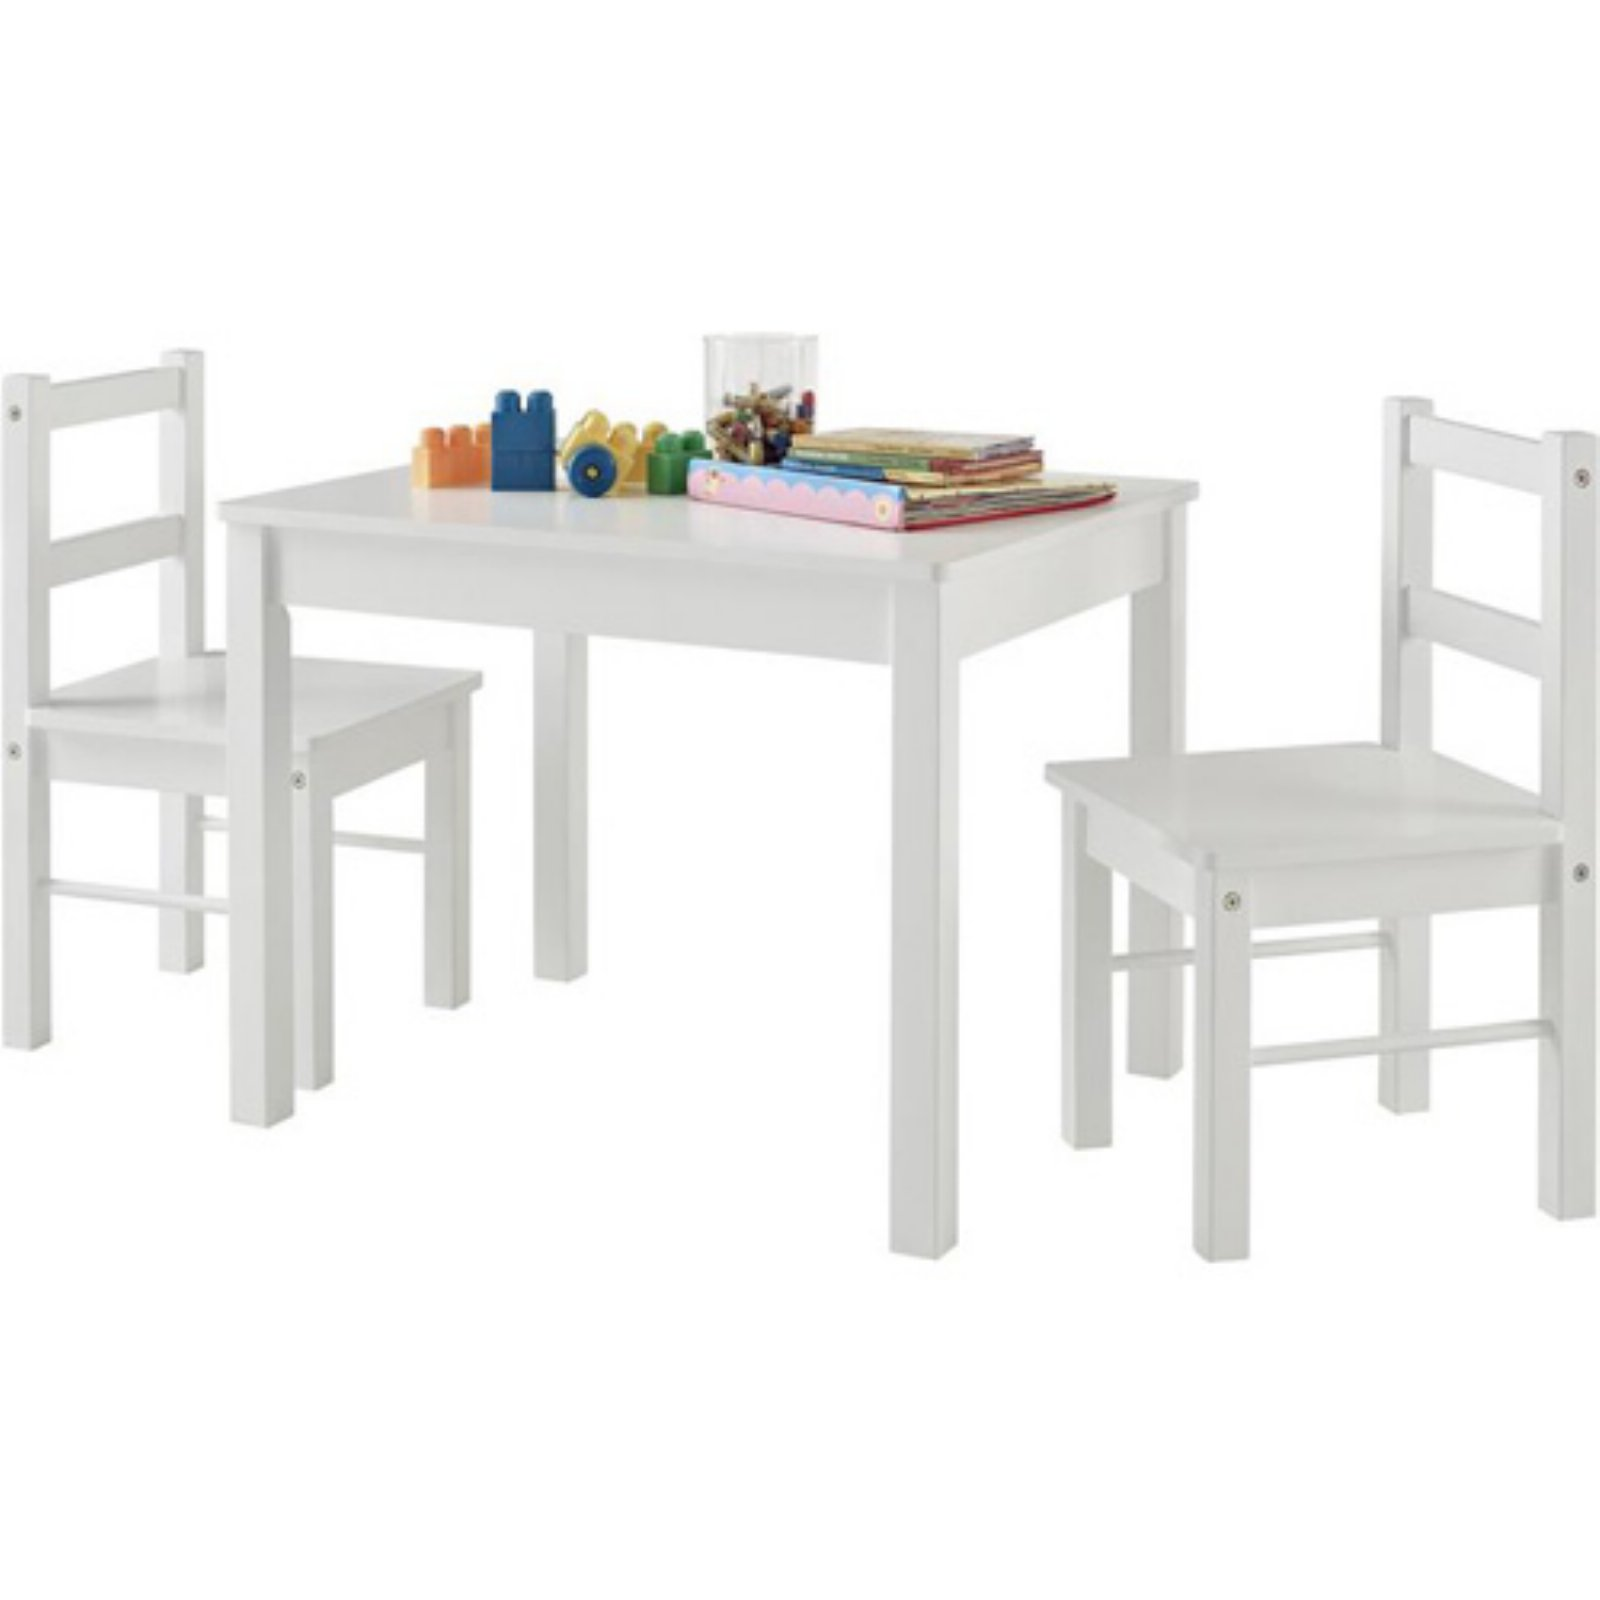 Infant Table And Chairs Ameriwood Home Hazel Kid S Table And Chairs Set Multiple Colors